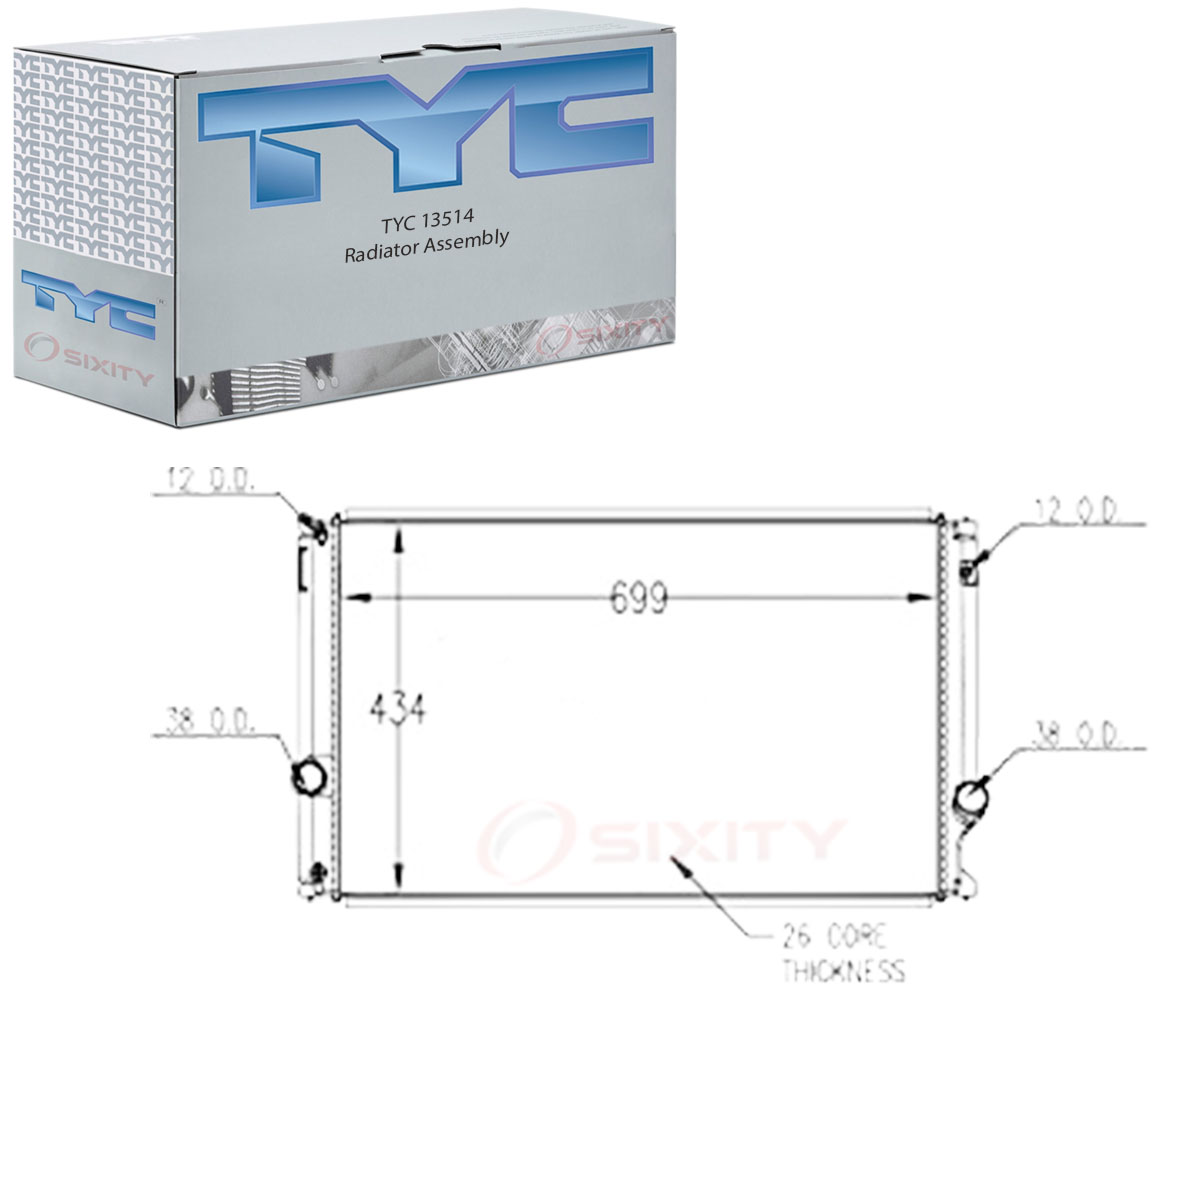 TYC 13514 Radiator Assembly for Lexus 16400-36100 hq